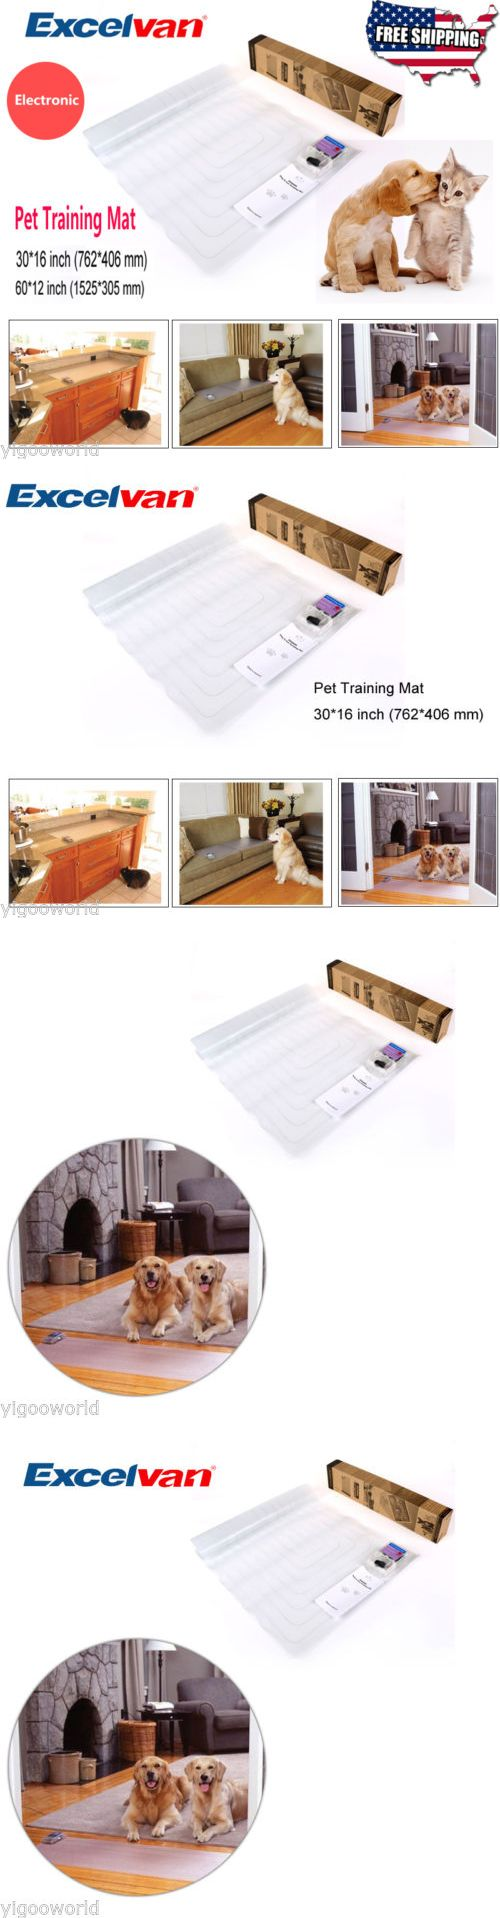 House Training Pads 146243: Indoor Electronic Pet Puppy Dog Cat Training Shock Scat Mat Pad Sofa Protection -> BUY IT NOW ONLY: $30.39 on eBay!